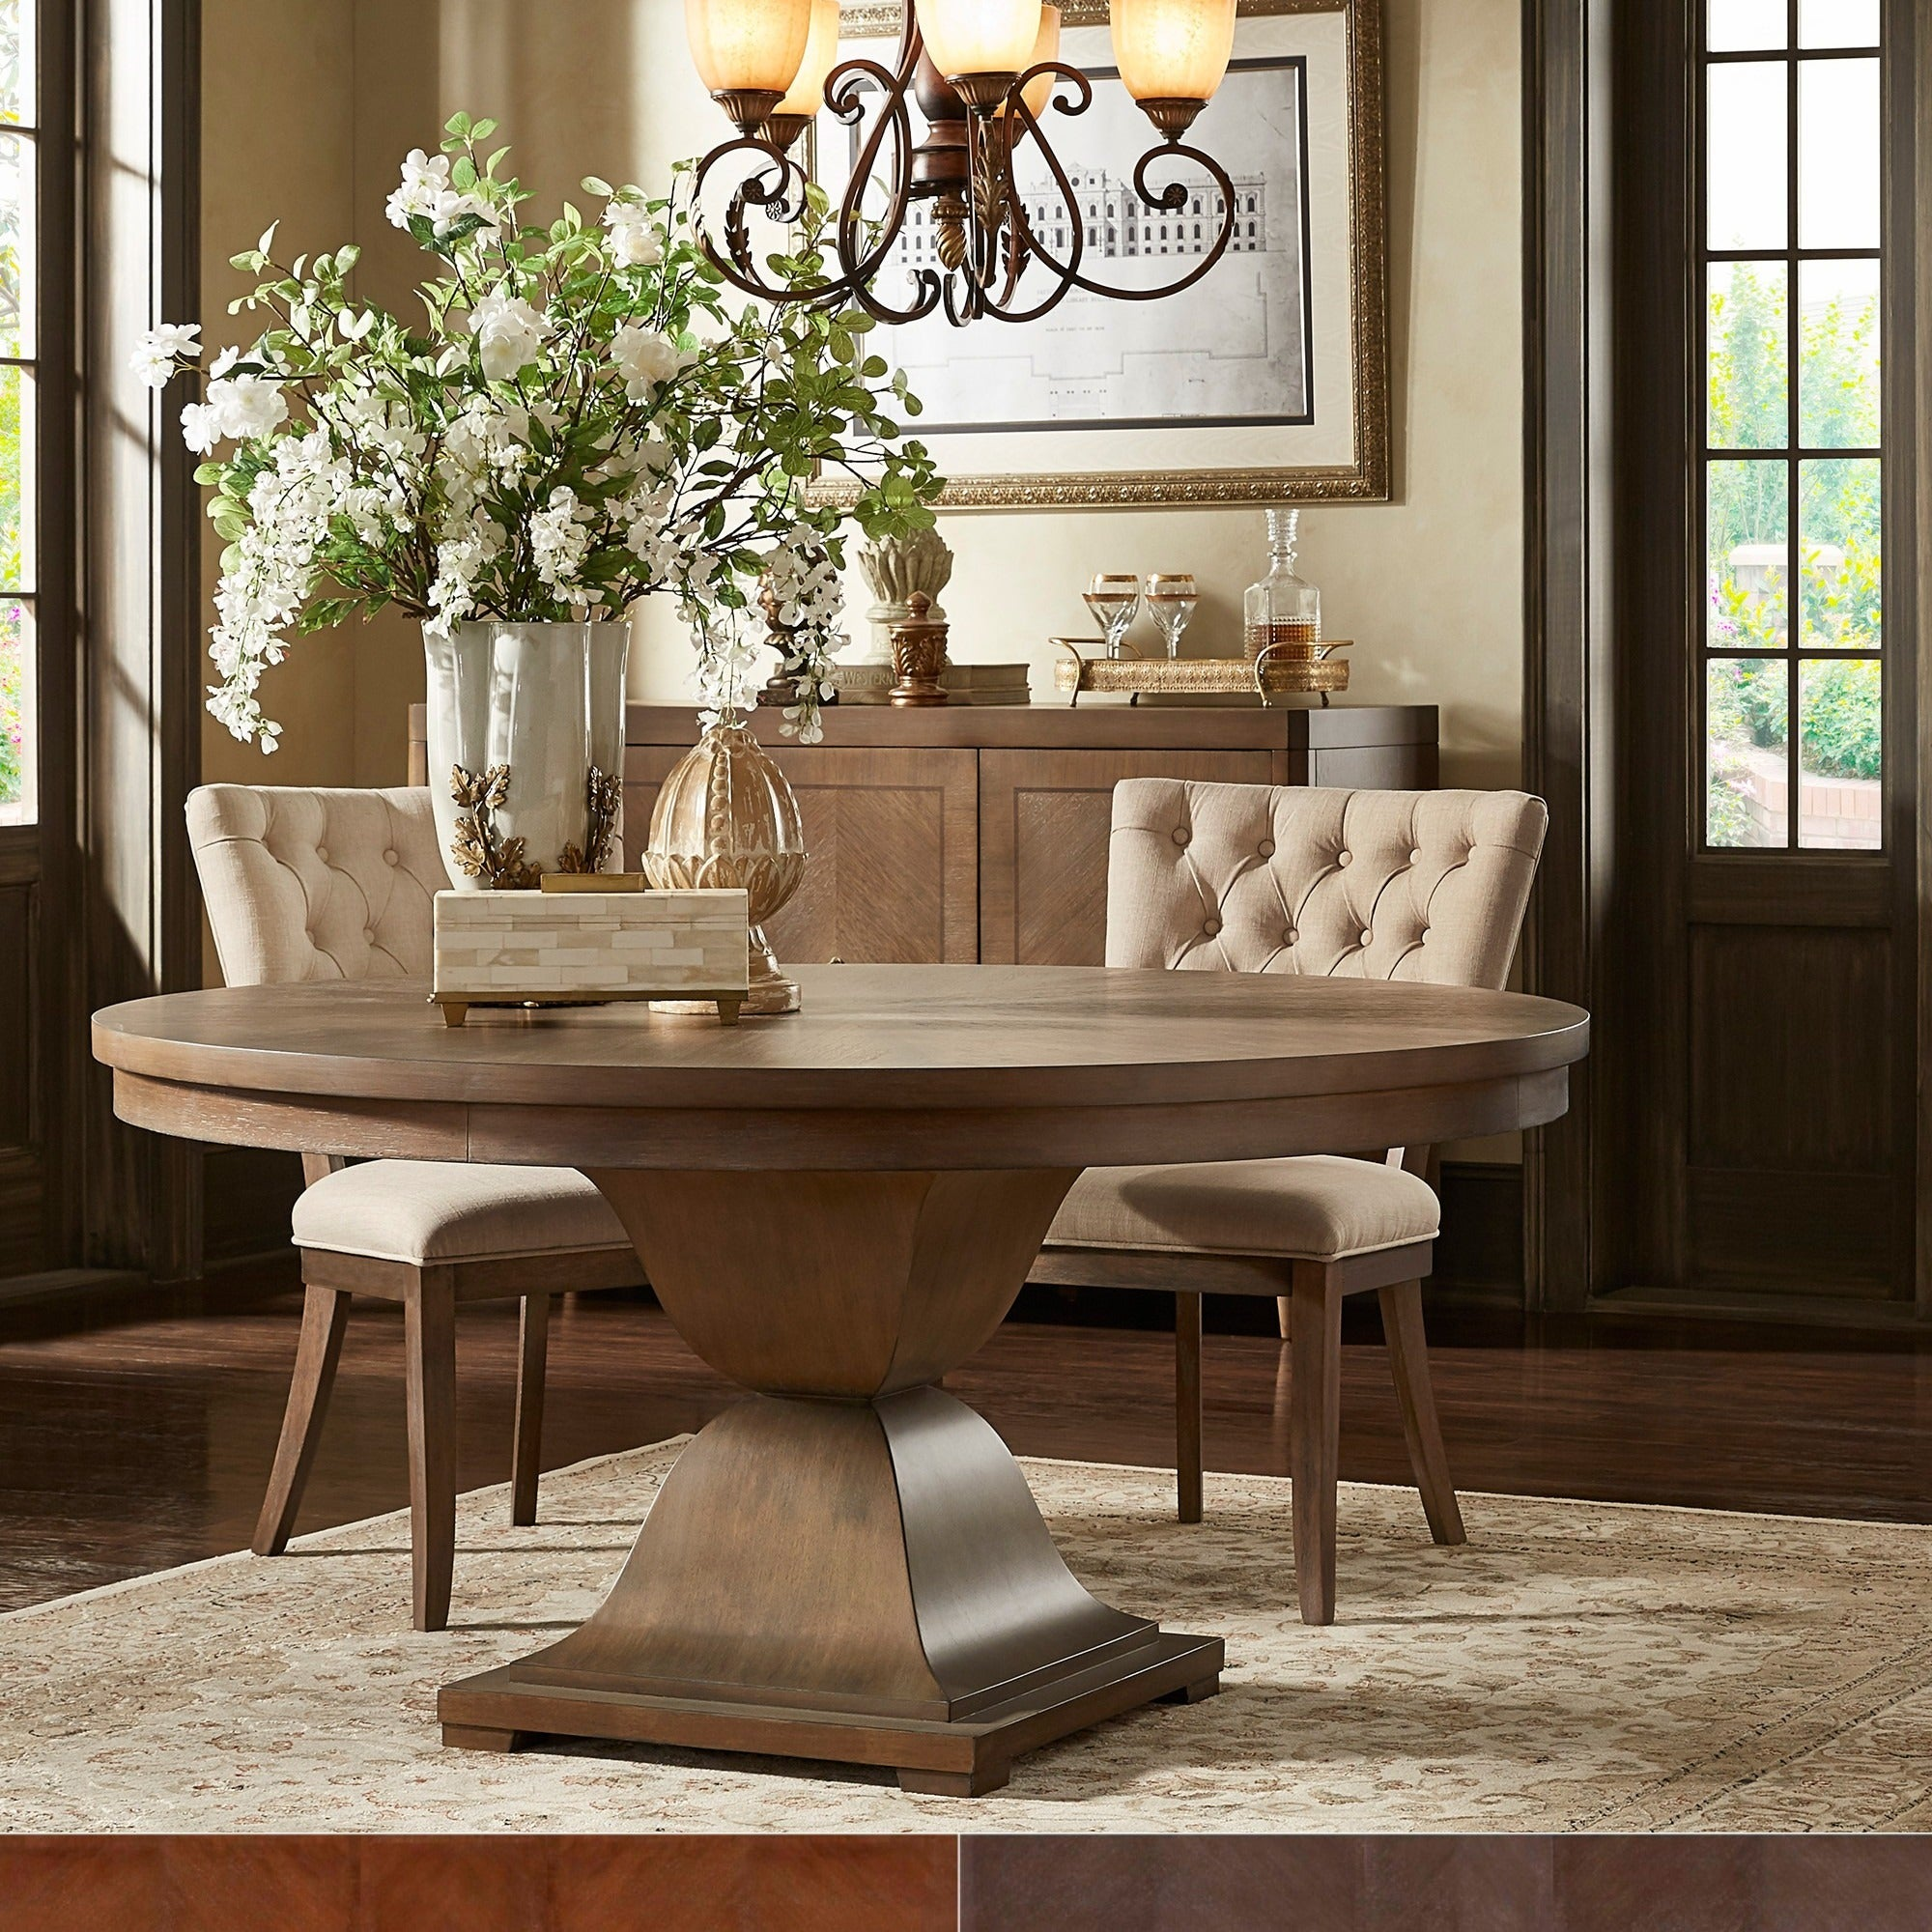 Monaco Scratch Resistant 60 Inch Round Wood Dining Table By INSPIRE Q  Artisan